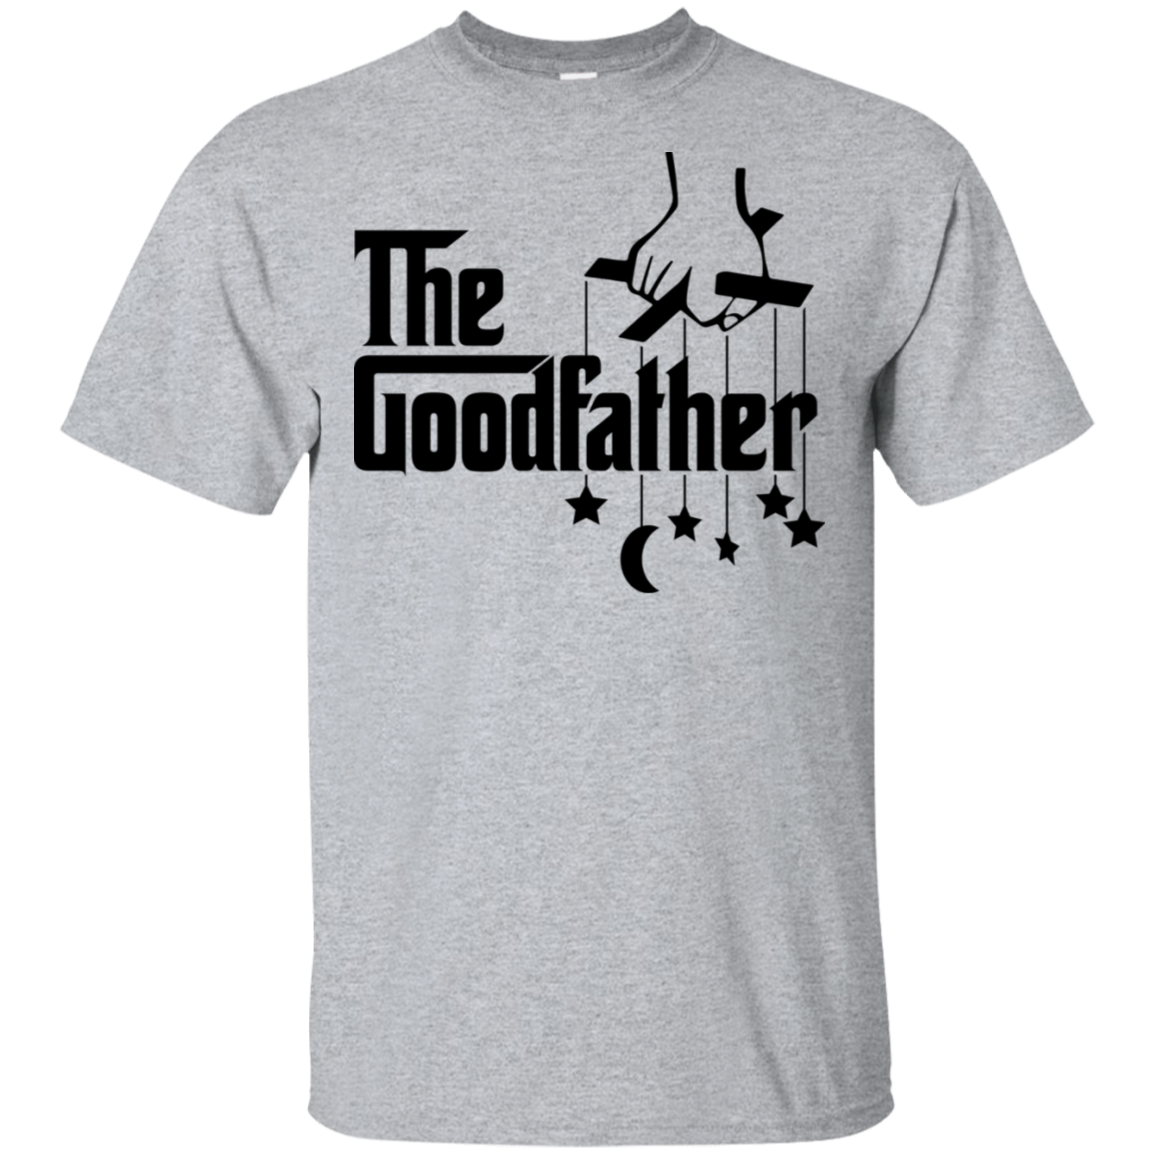 The GoodFather Gildan Ultra Cotton T-Shirt